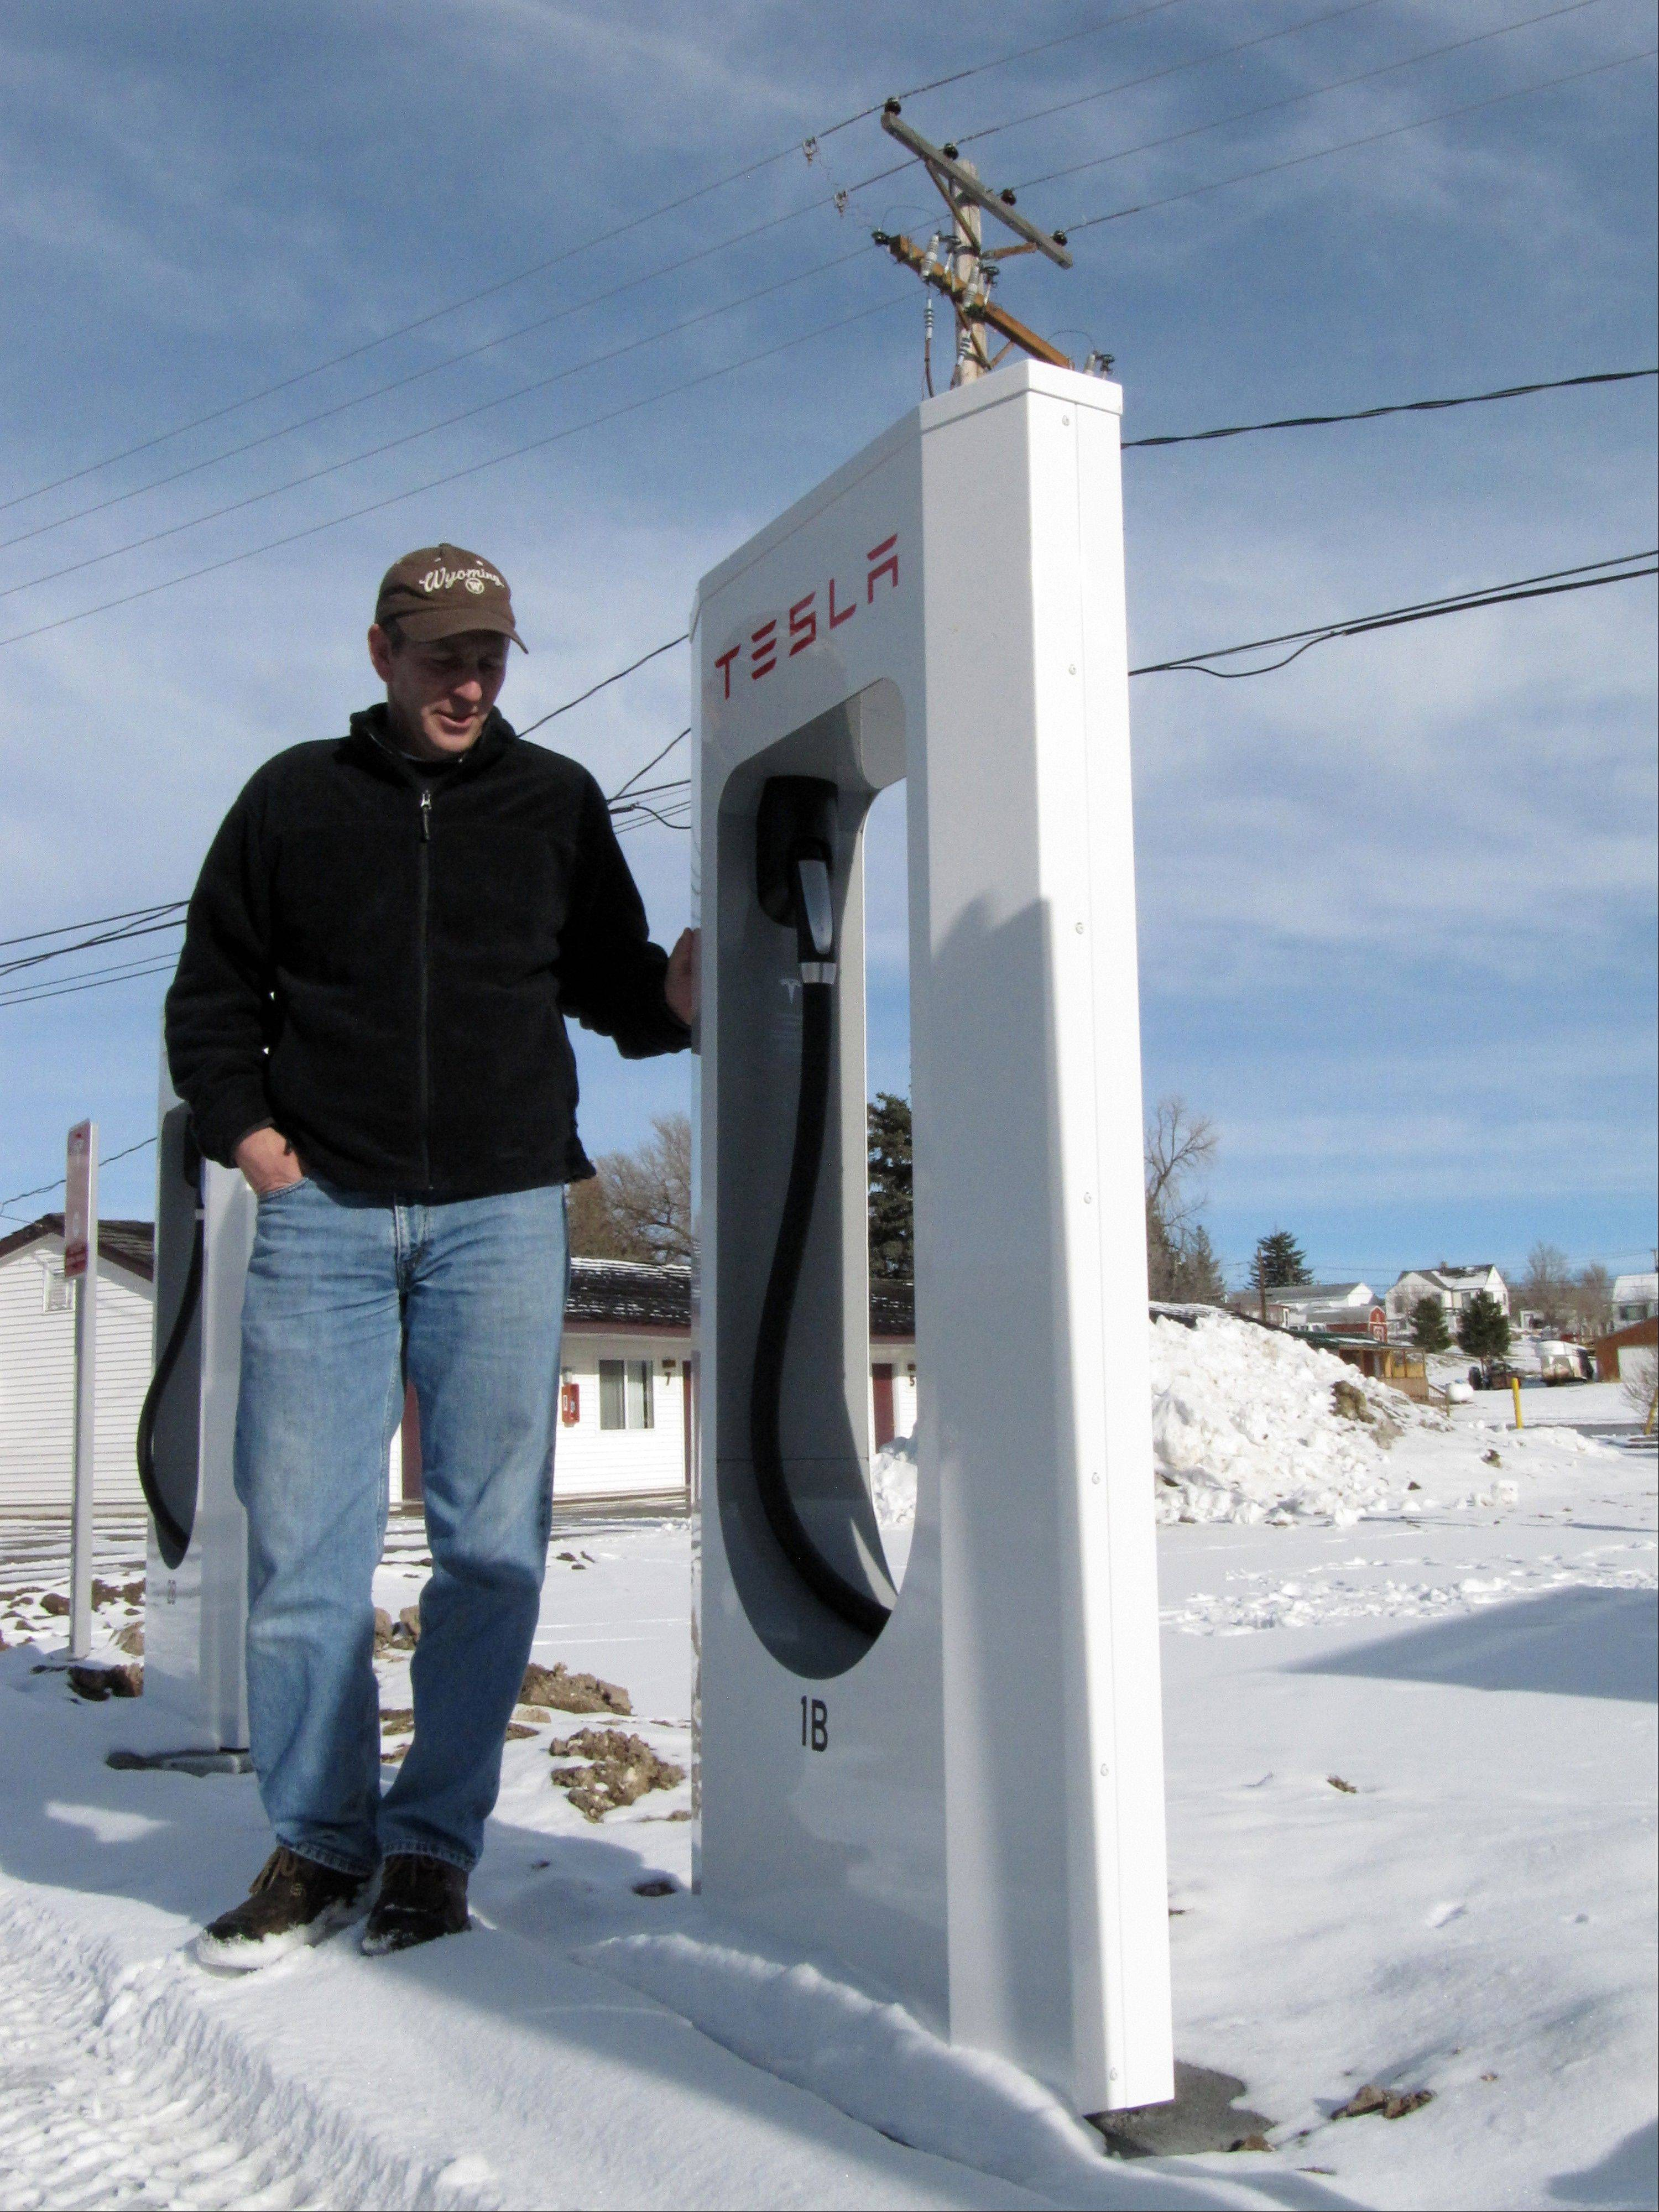 Mark Kupke, owner of the Covered Wagon Motel in Lusk, Wyo., stands next to one of four Tesla Supercharger units installed in December in the hotel courtyard. A Supercharger can recharge a Tesla's depleted battery pack to a 90-percent level within 45-50 minutes, several times faster than any other charging option for the electric cars. Lusk is on the route of Tesla's first network of coast-to-coast Supercharger stations. The quick-charge stations promise to make cross-country travel by Tesla much quicker and easier.